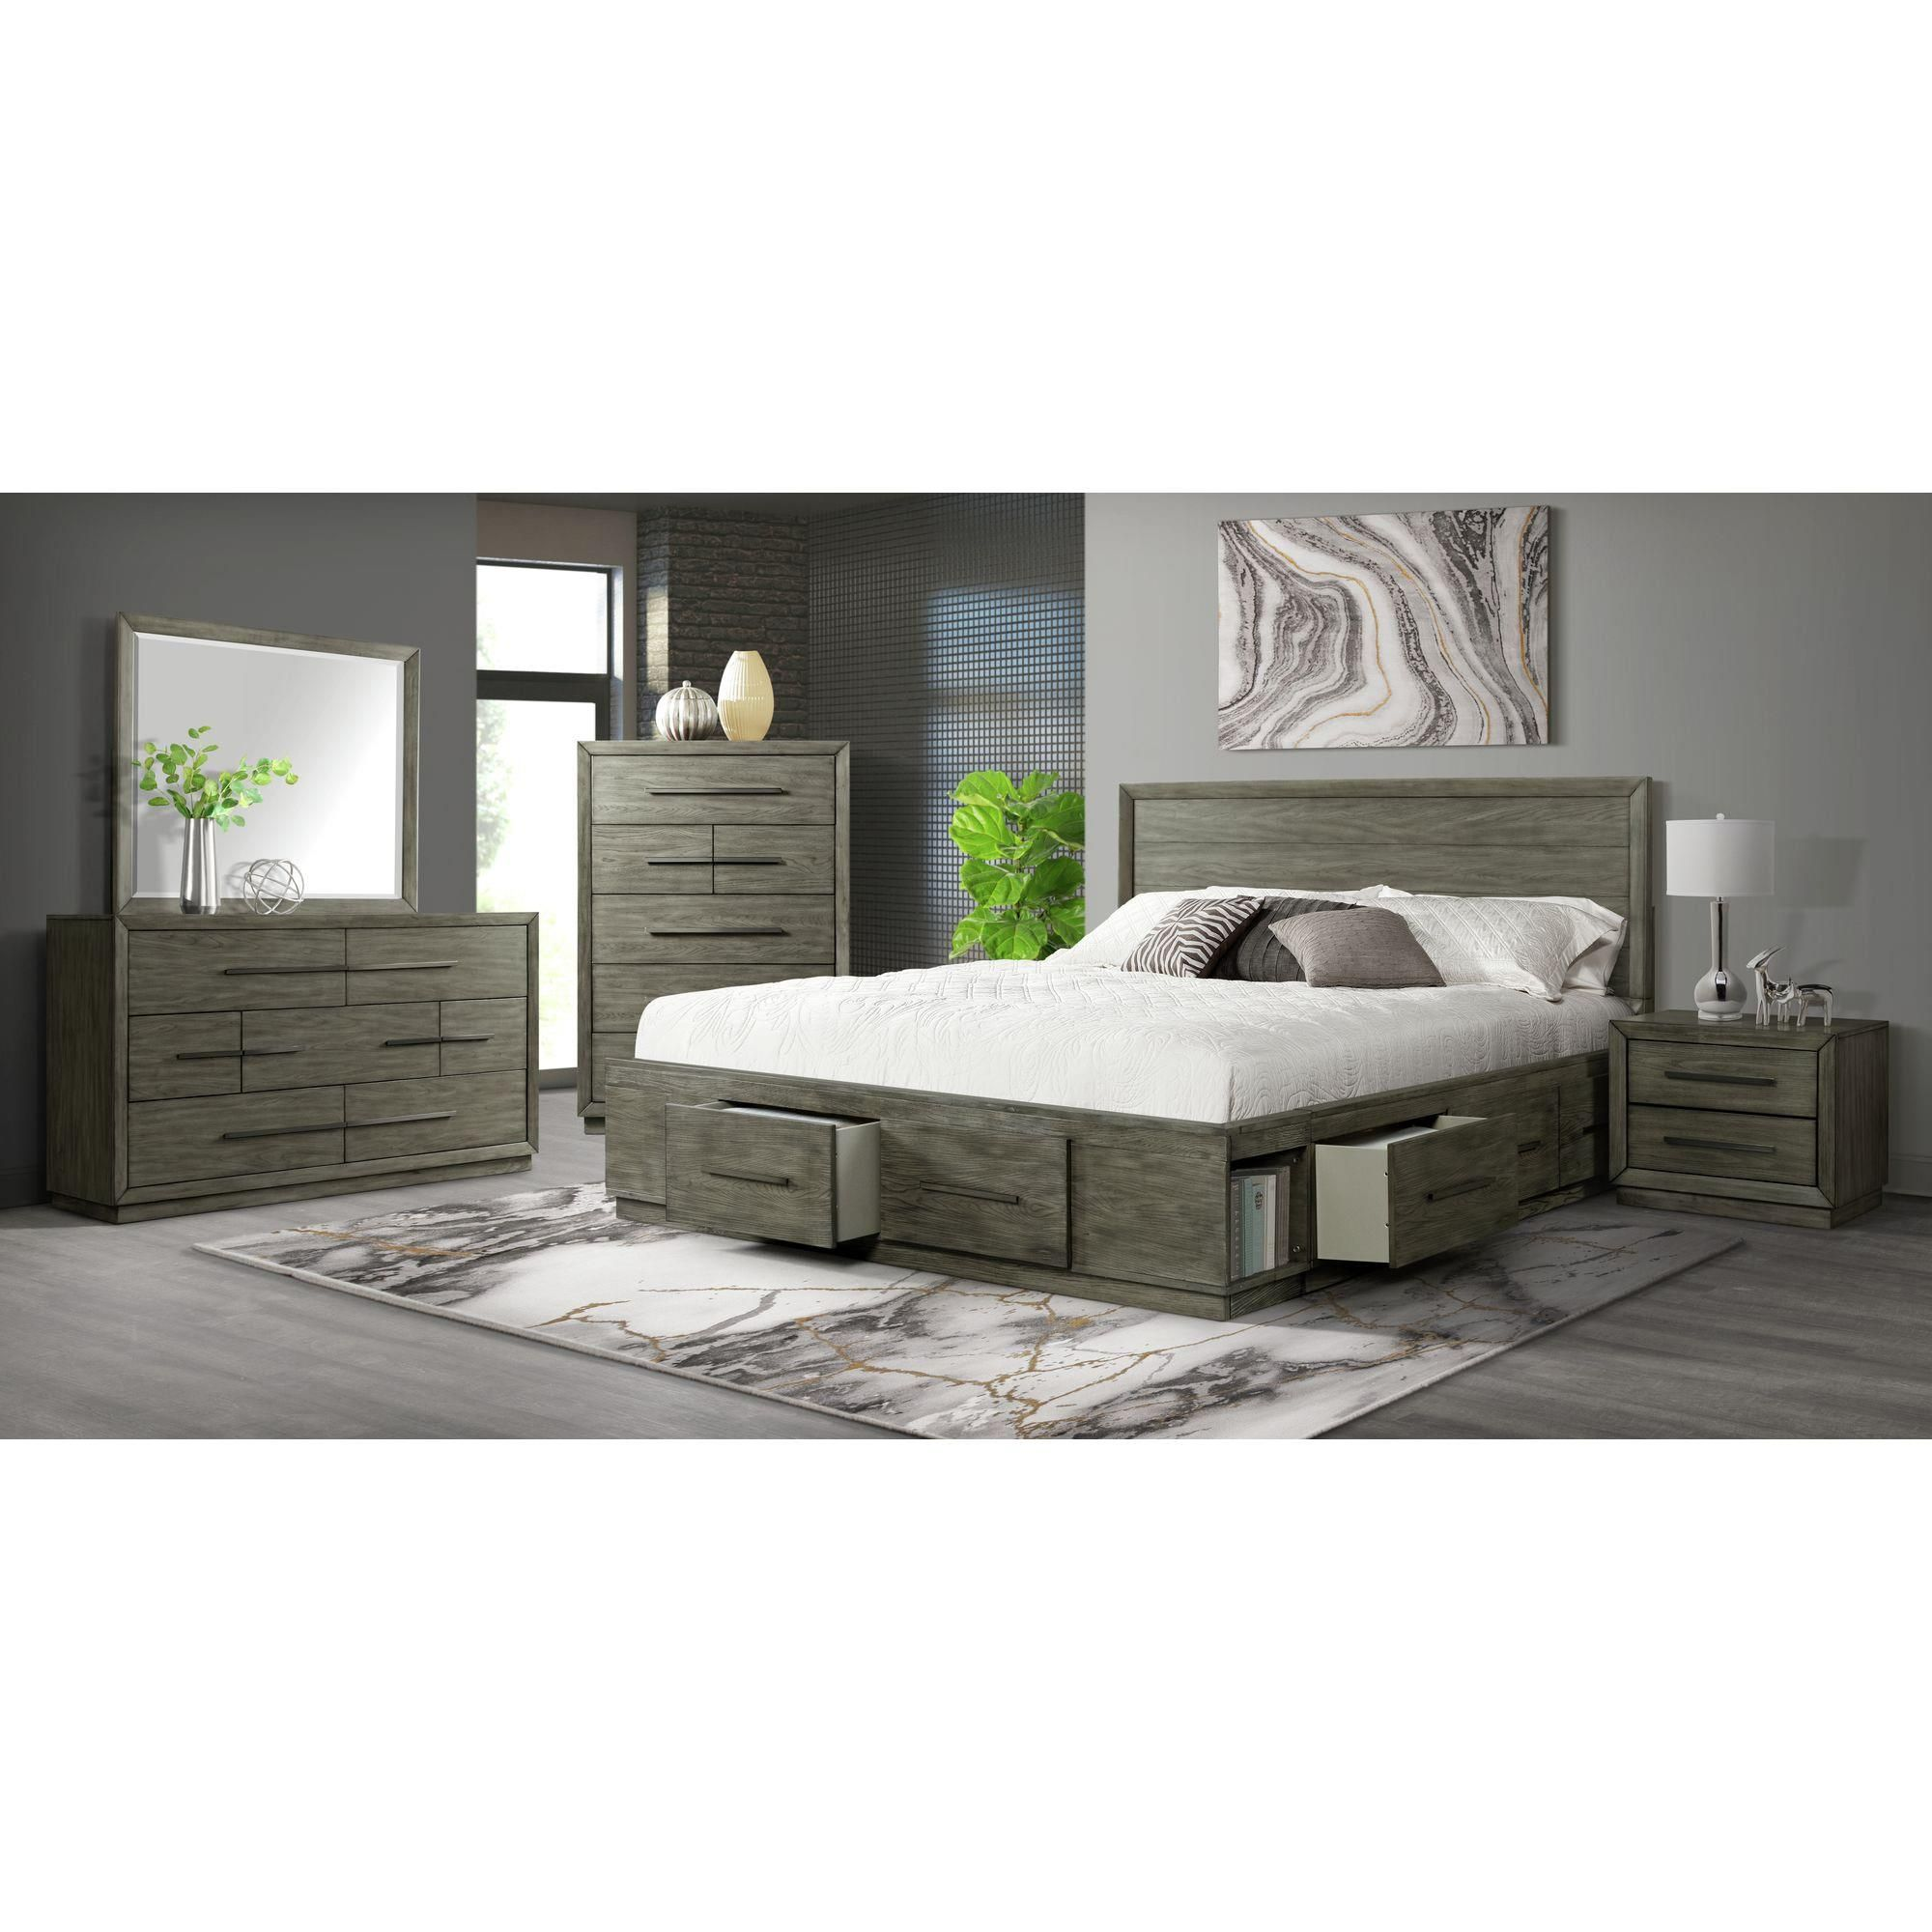 Mayberry Hill Elation Nightstand With Usb Port In Chic Grey Nfm In 2021 Bedroom Set Quality Bedroom Furniture Nebraska Furniture Mart [ 2000 x 2000 Pixel ]